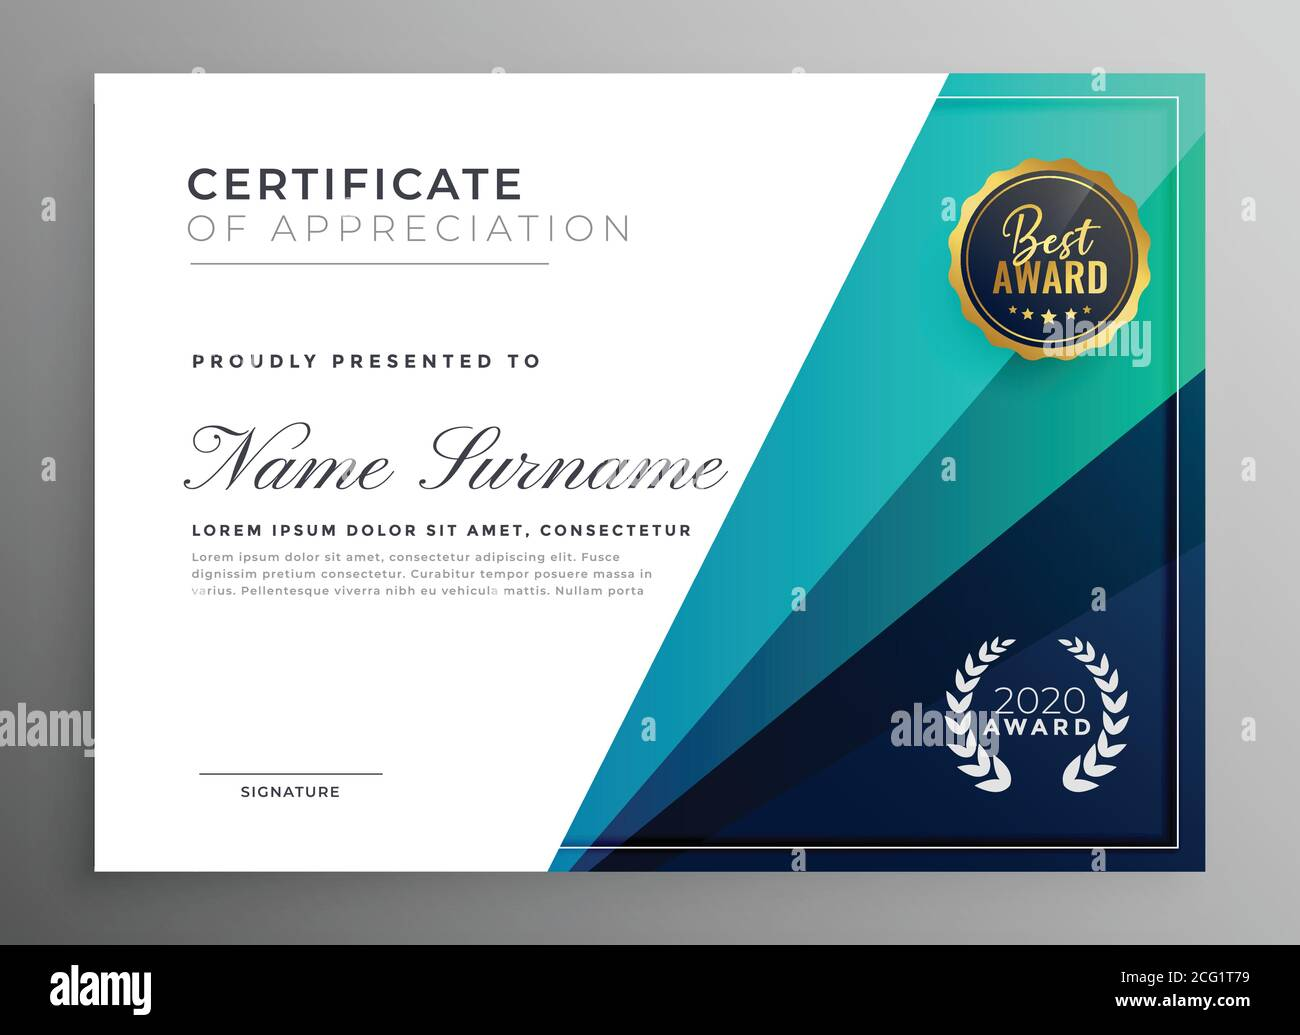 Page 2 Certificate Appreciation Creative Template High Resolution Stock Photography And Images Alamy